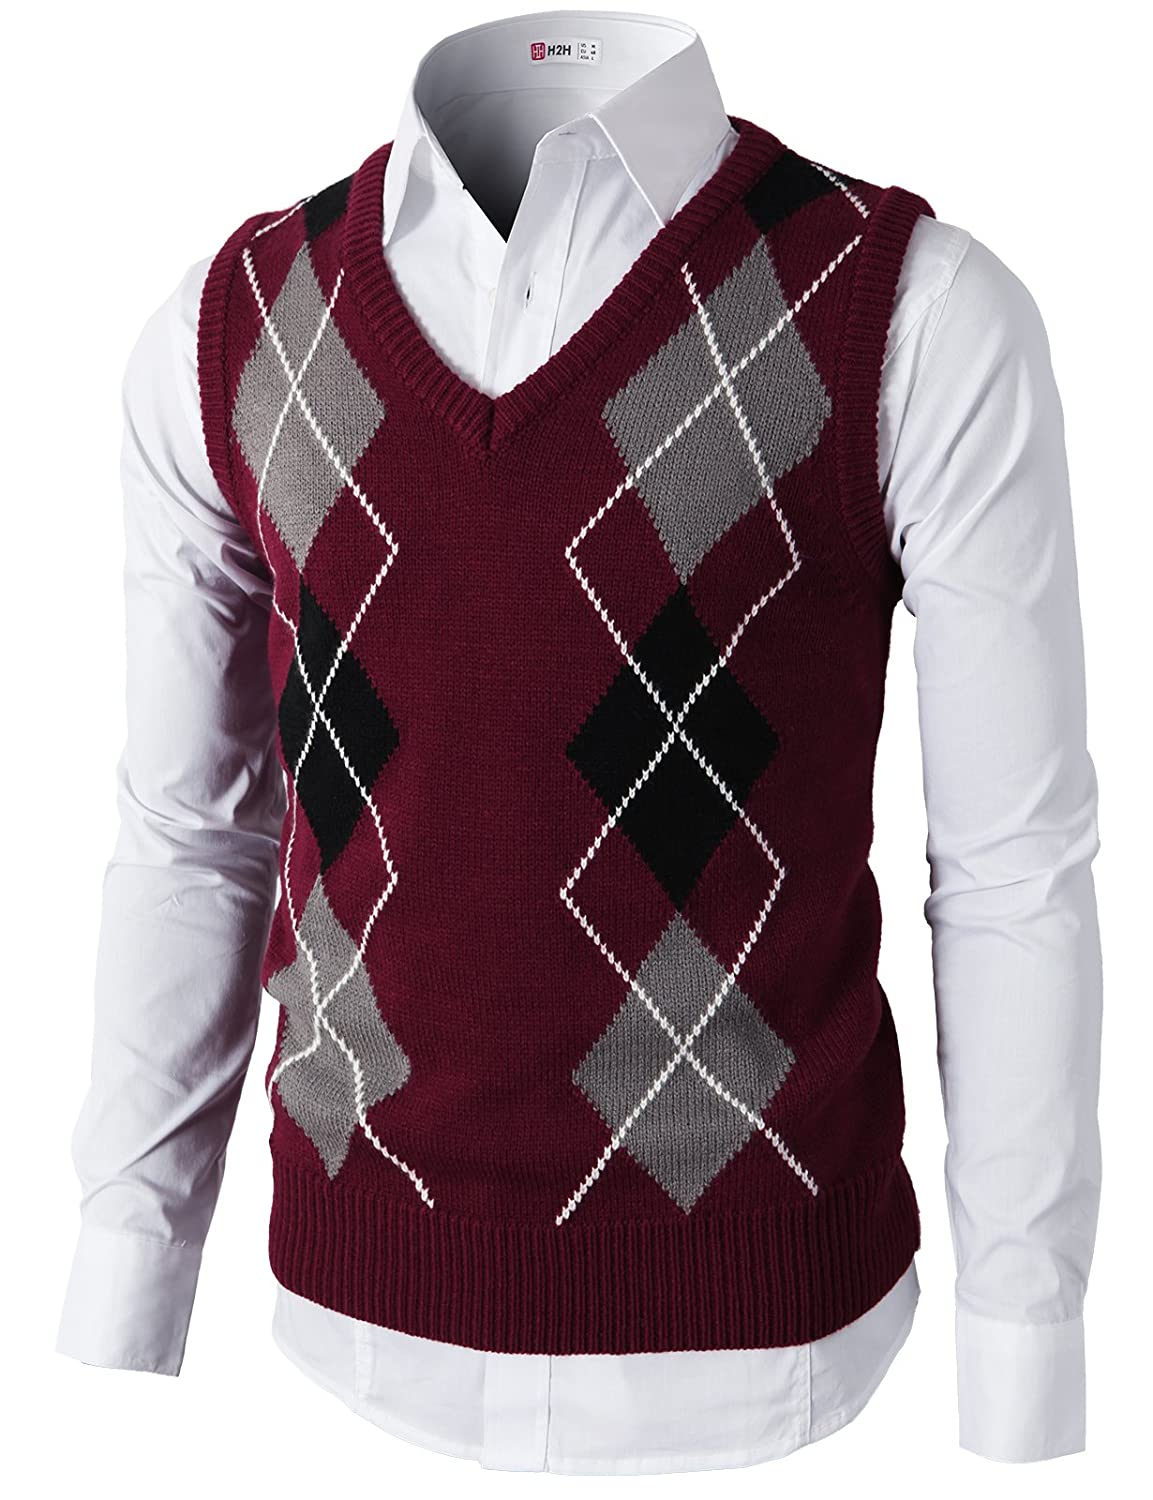 Men's Vintage Vests, Sweater Vests Argyle V-Neck Golf Sweater Vest Of Various Colors $29.70 AT vintagedancer.com